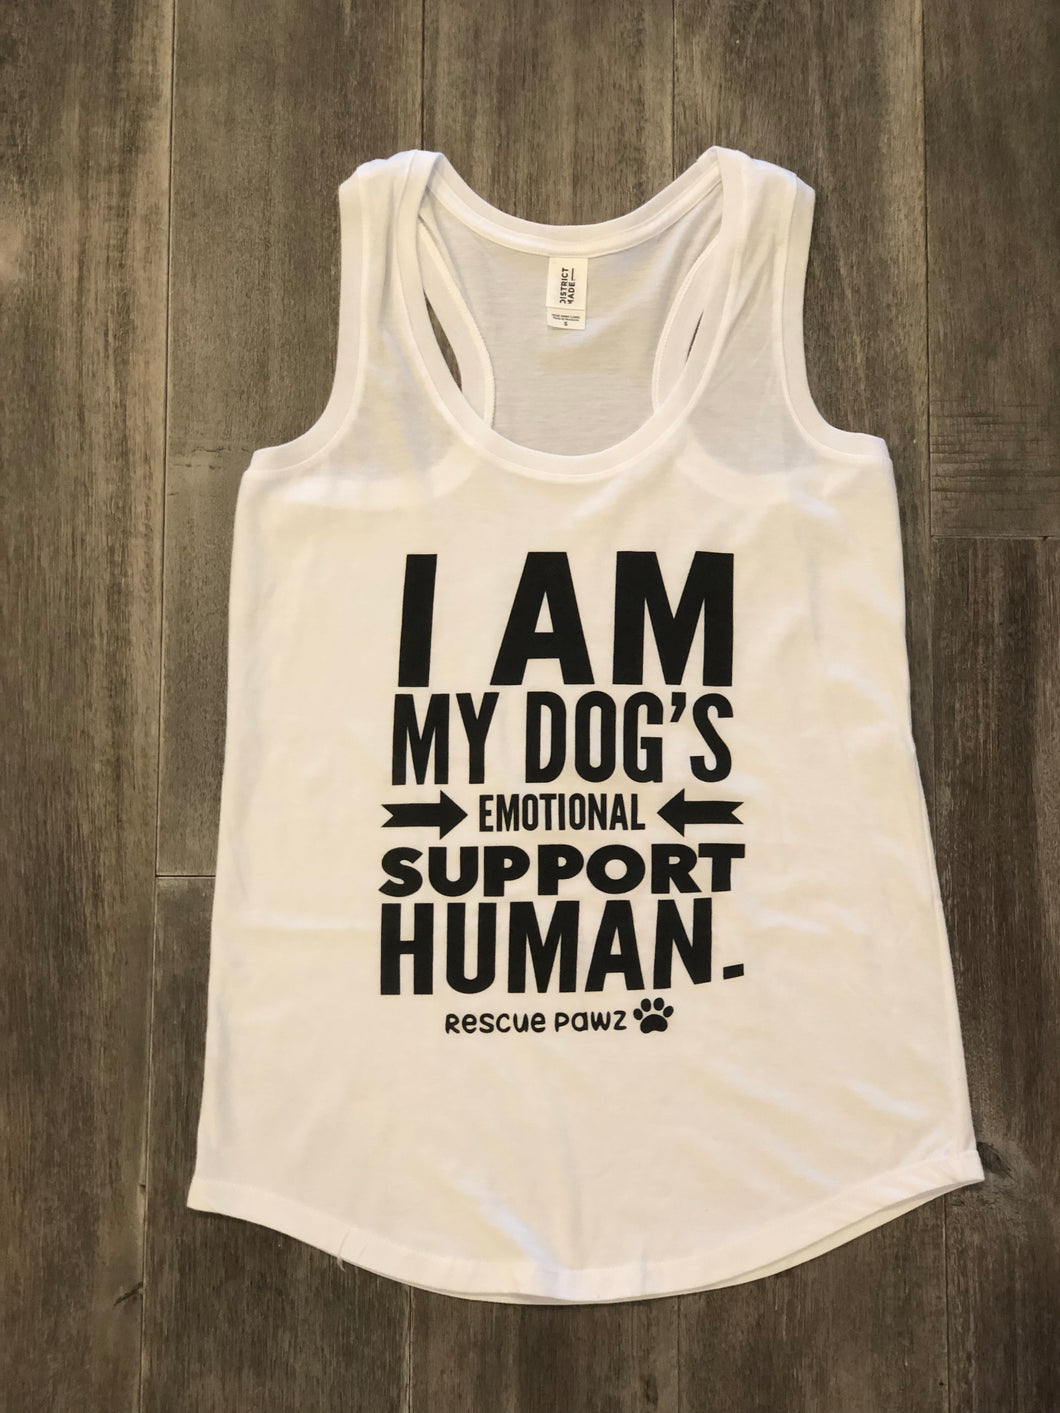 Emotional Support Human Women's Tank Top